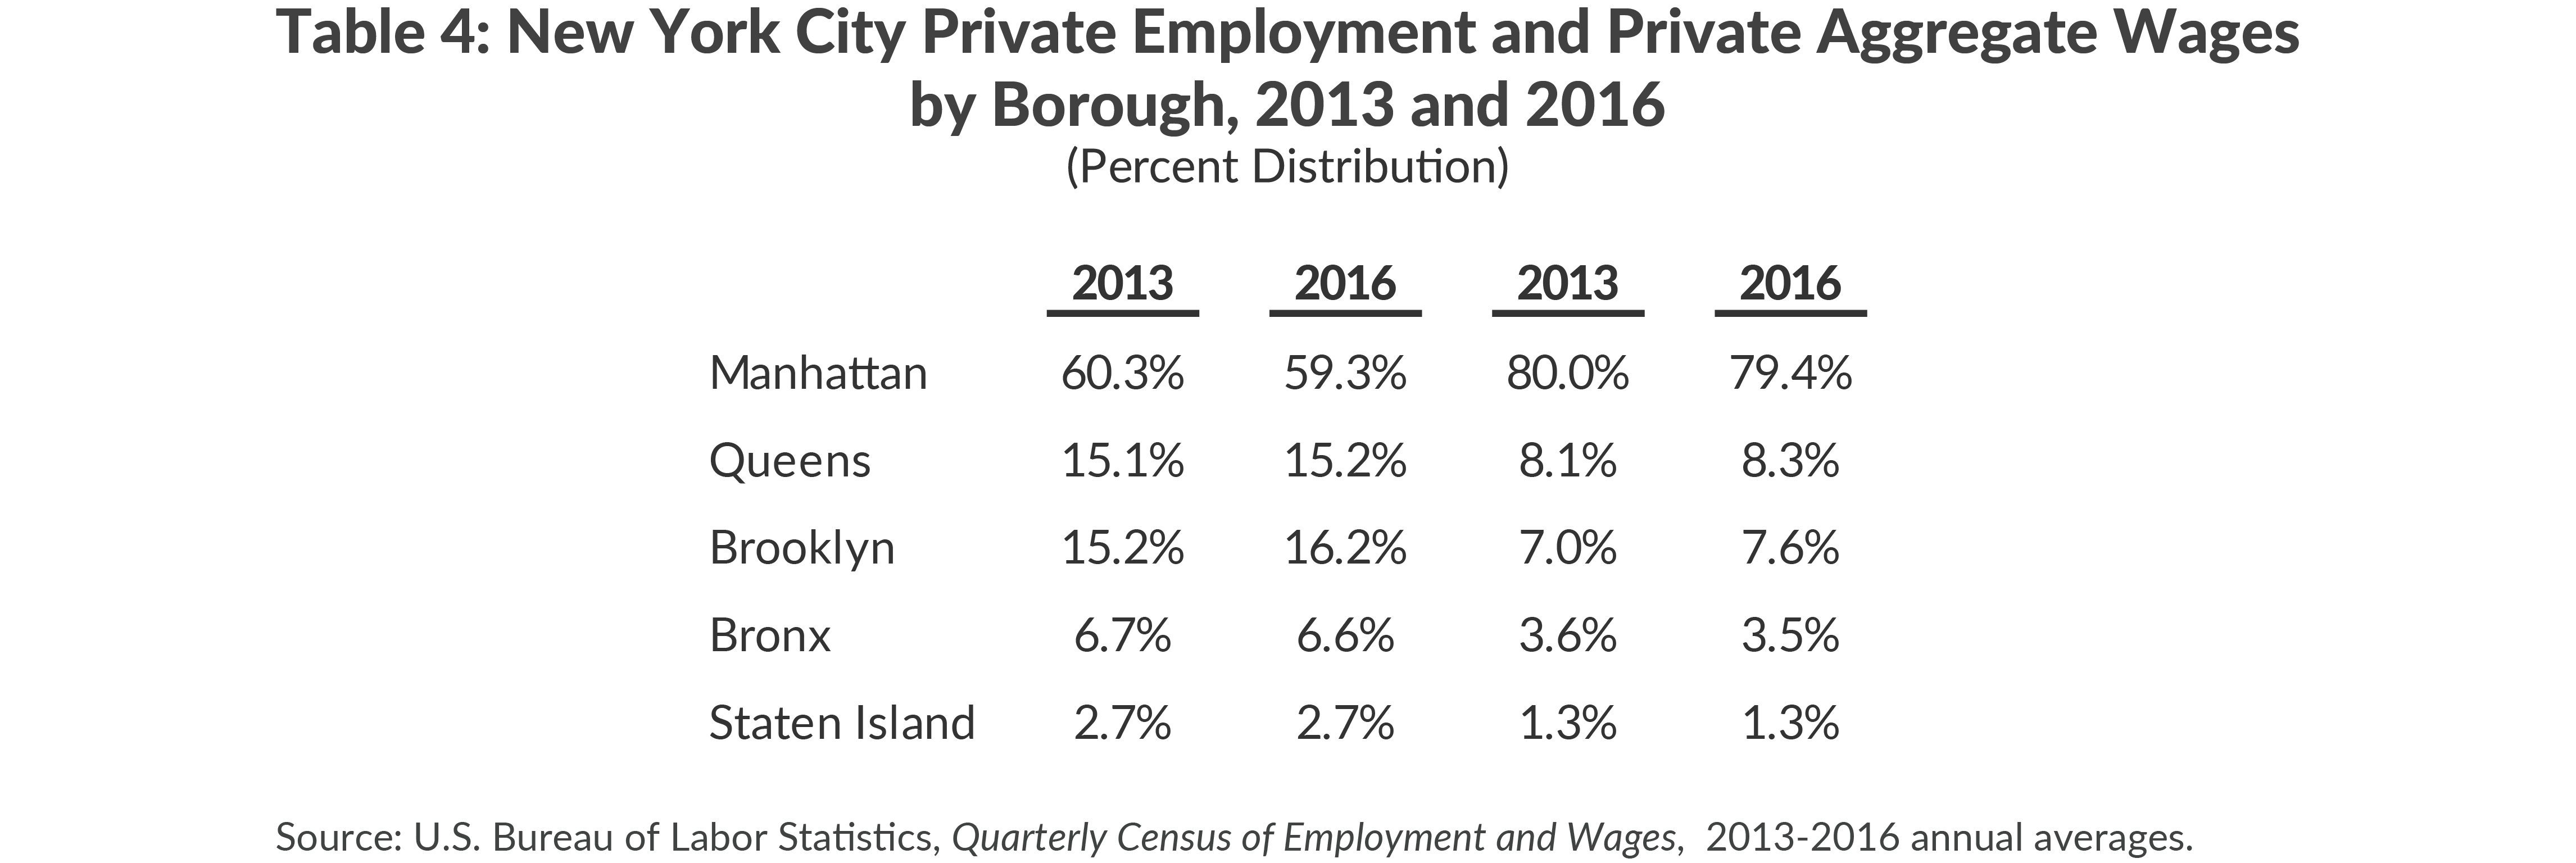 New York City Private Employment and Private Aggregate Wages by Borough